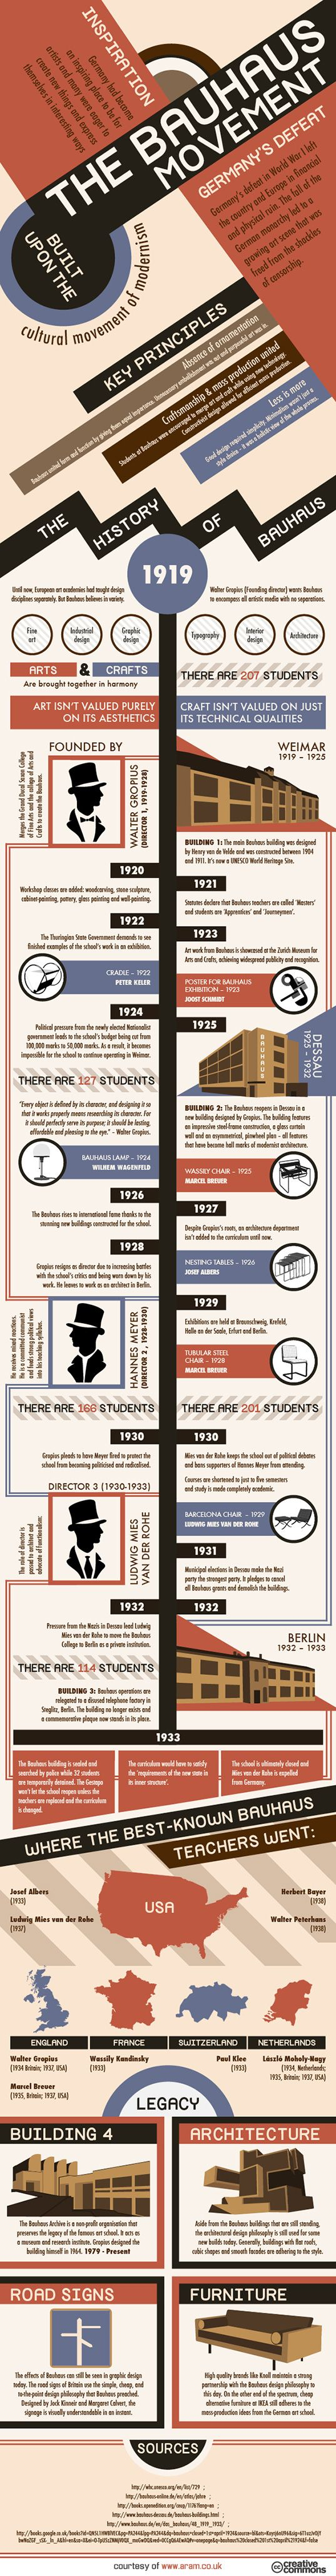 History of the Bauhaus design movement #Infografía